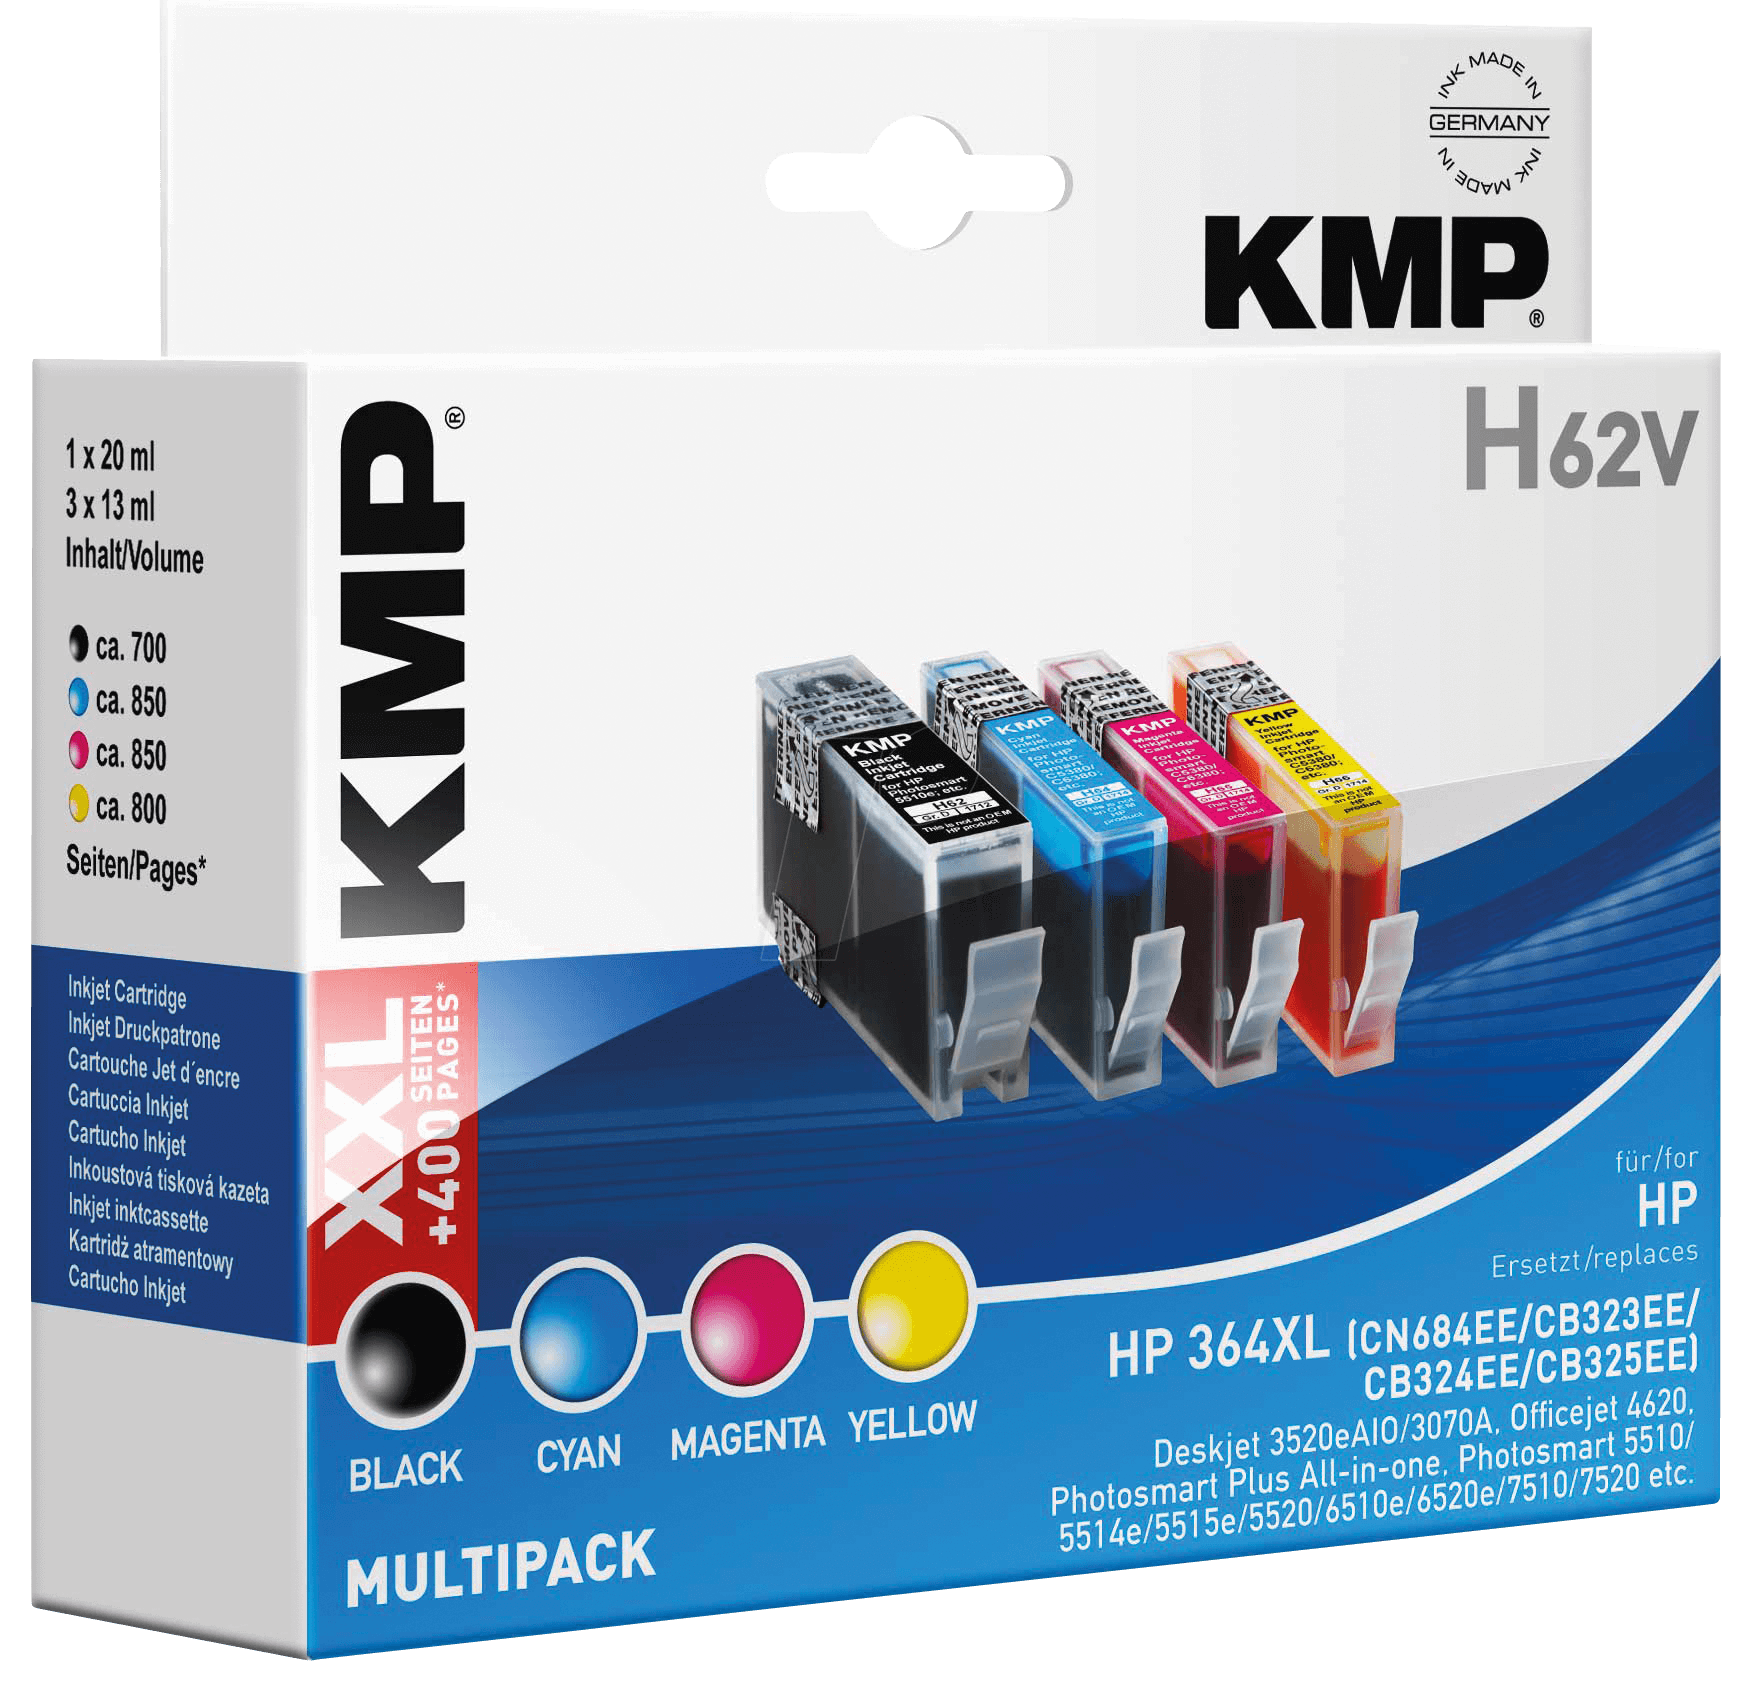 tinte kmp h62v ink hp multipack 364xl refill at. Black Bedroom Furniture Sets. Home Design Ideas